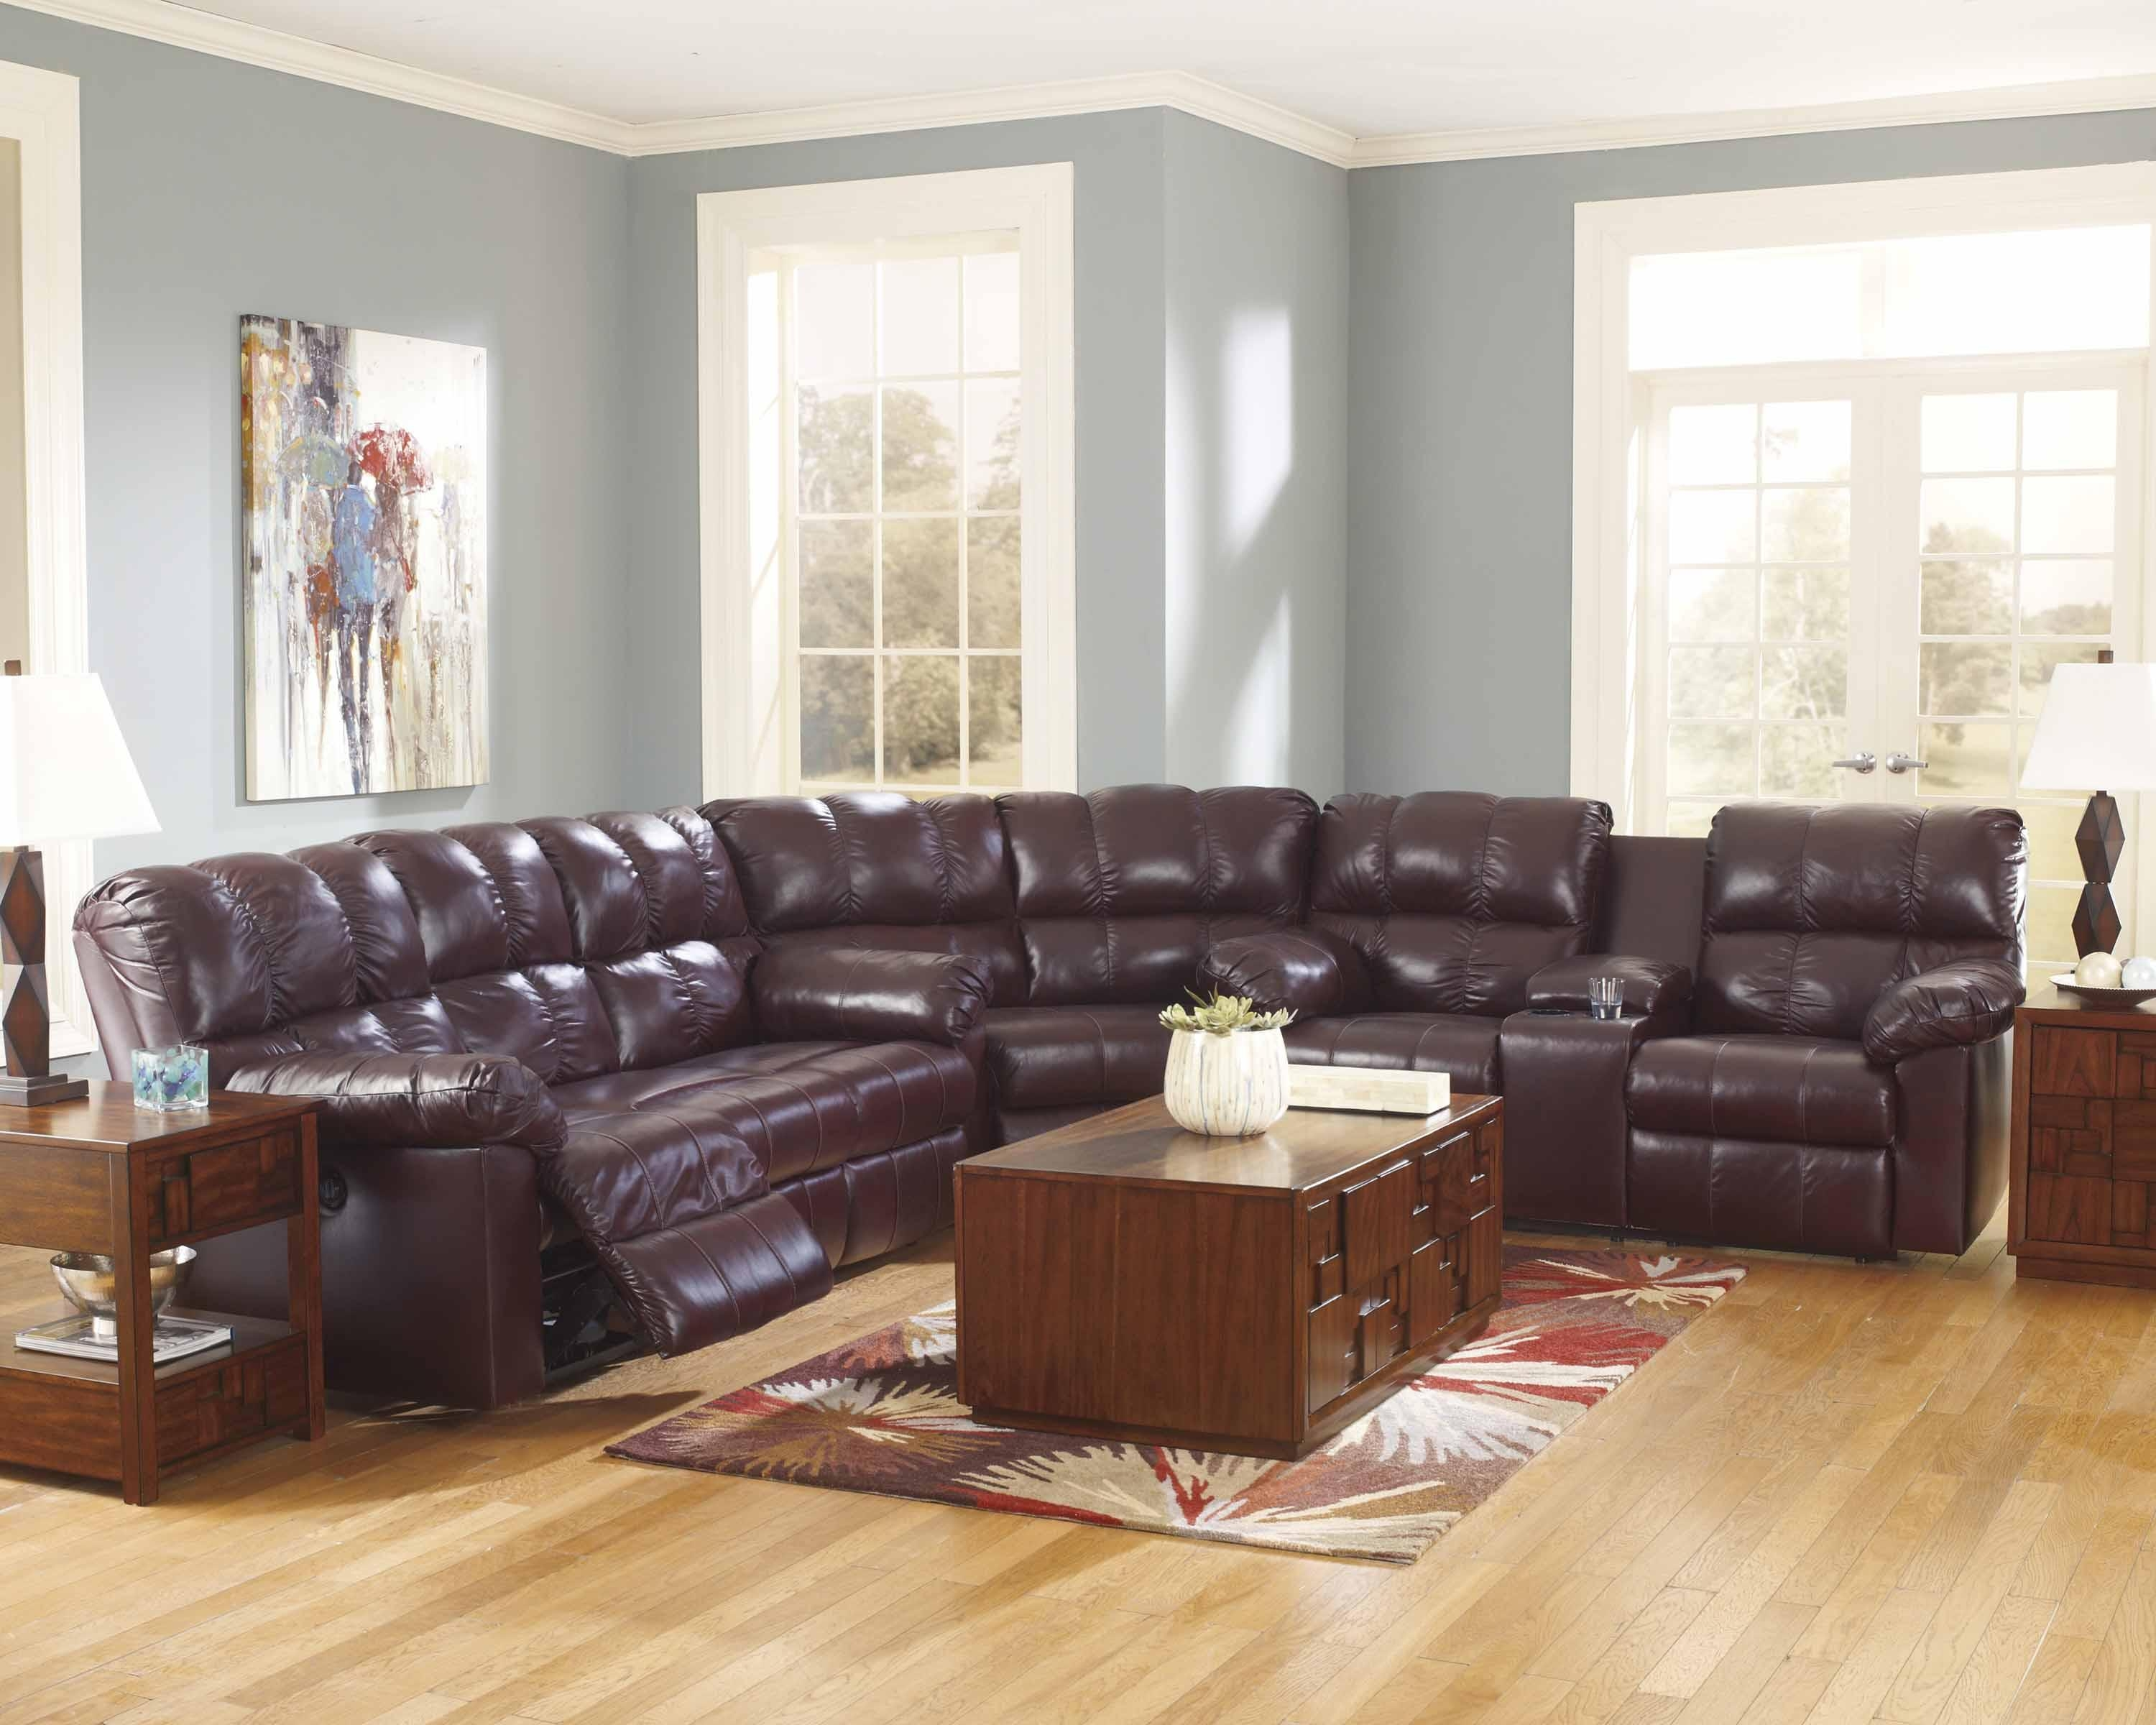 Kennard Power Reclining Sectional Sofa In Burgundy 290 Intended For Burgundy Sectional Sofas (Image 12 of 20)